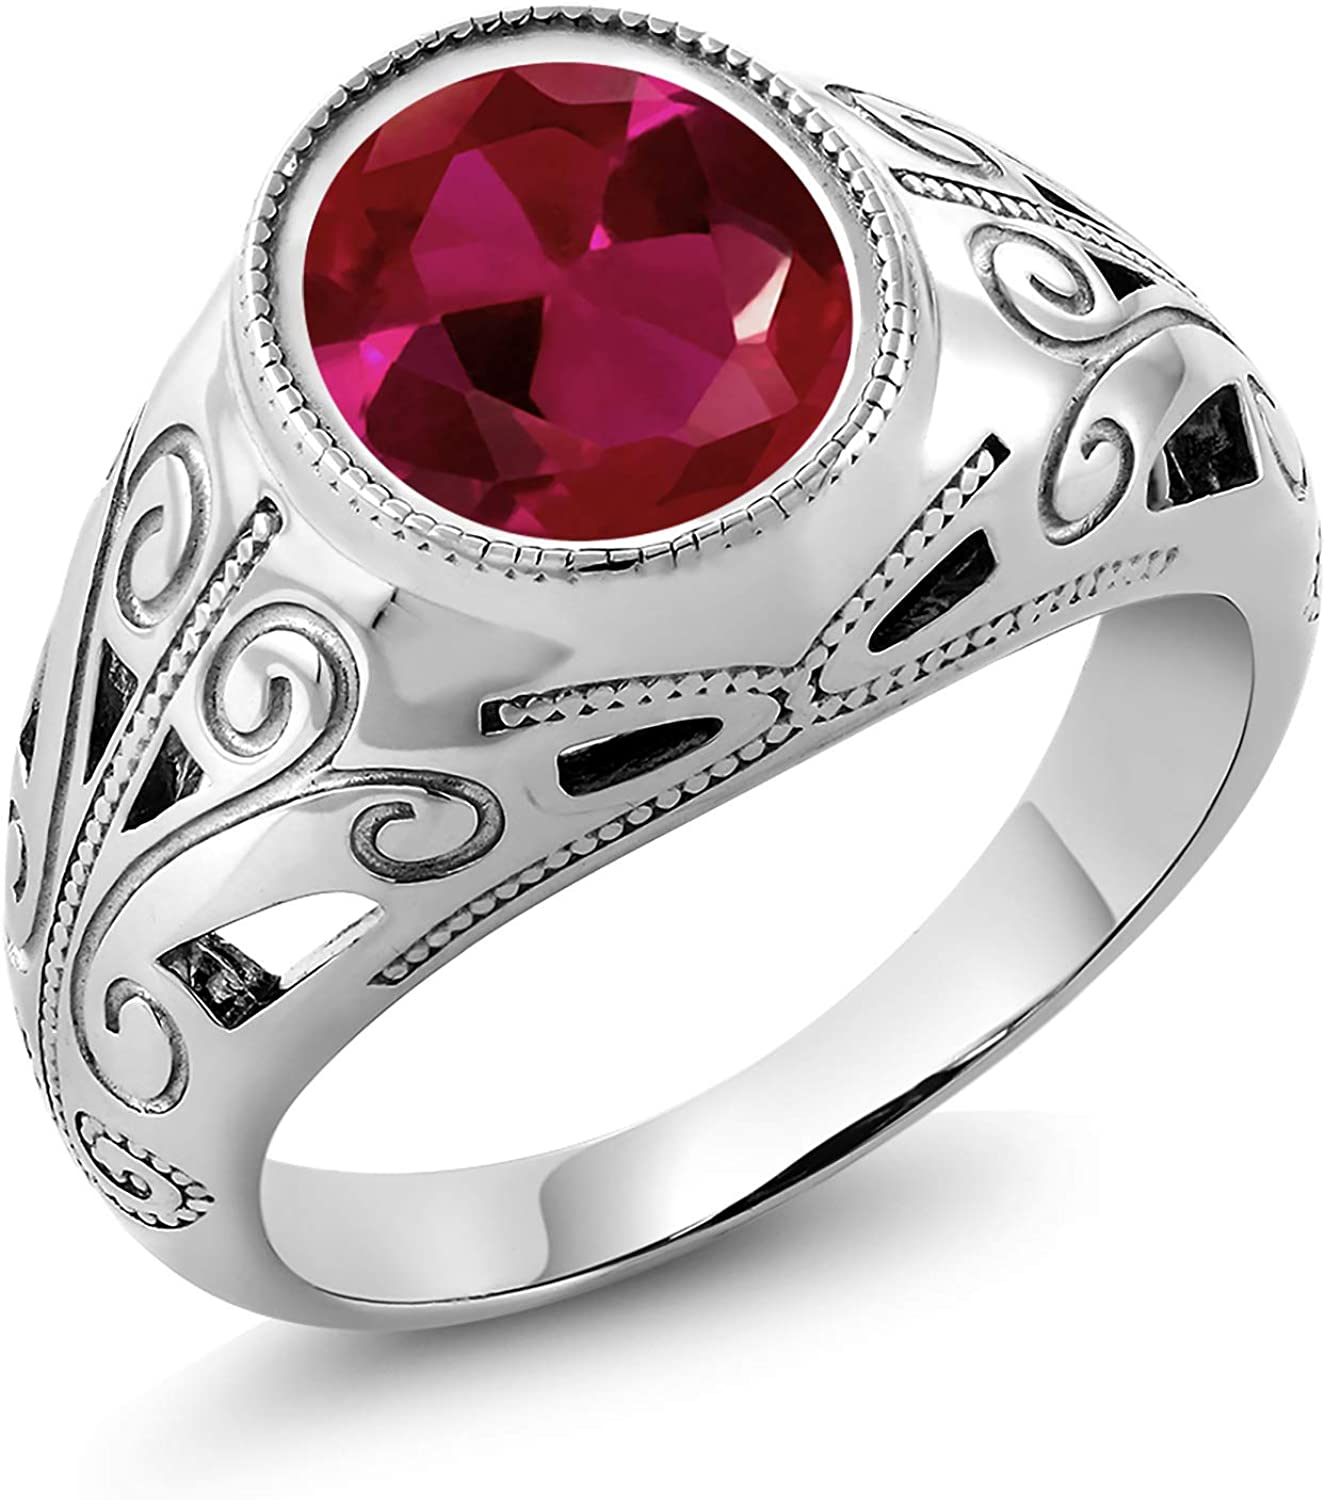 Gem Stone King 925 Sterling Silver Oval Red Created Ruby Men's Ring 6.40 Ct (Available 7,8,9,10,11,12,13)